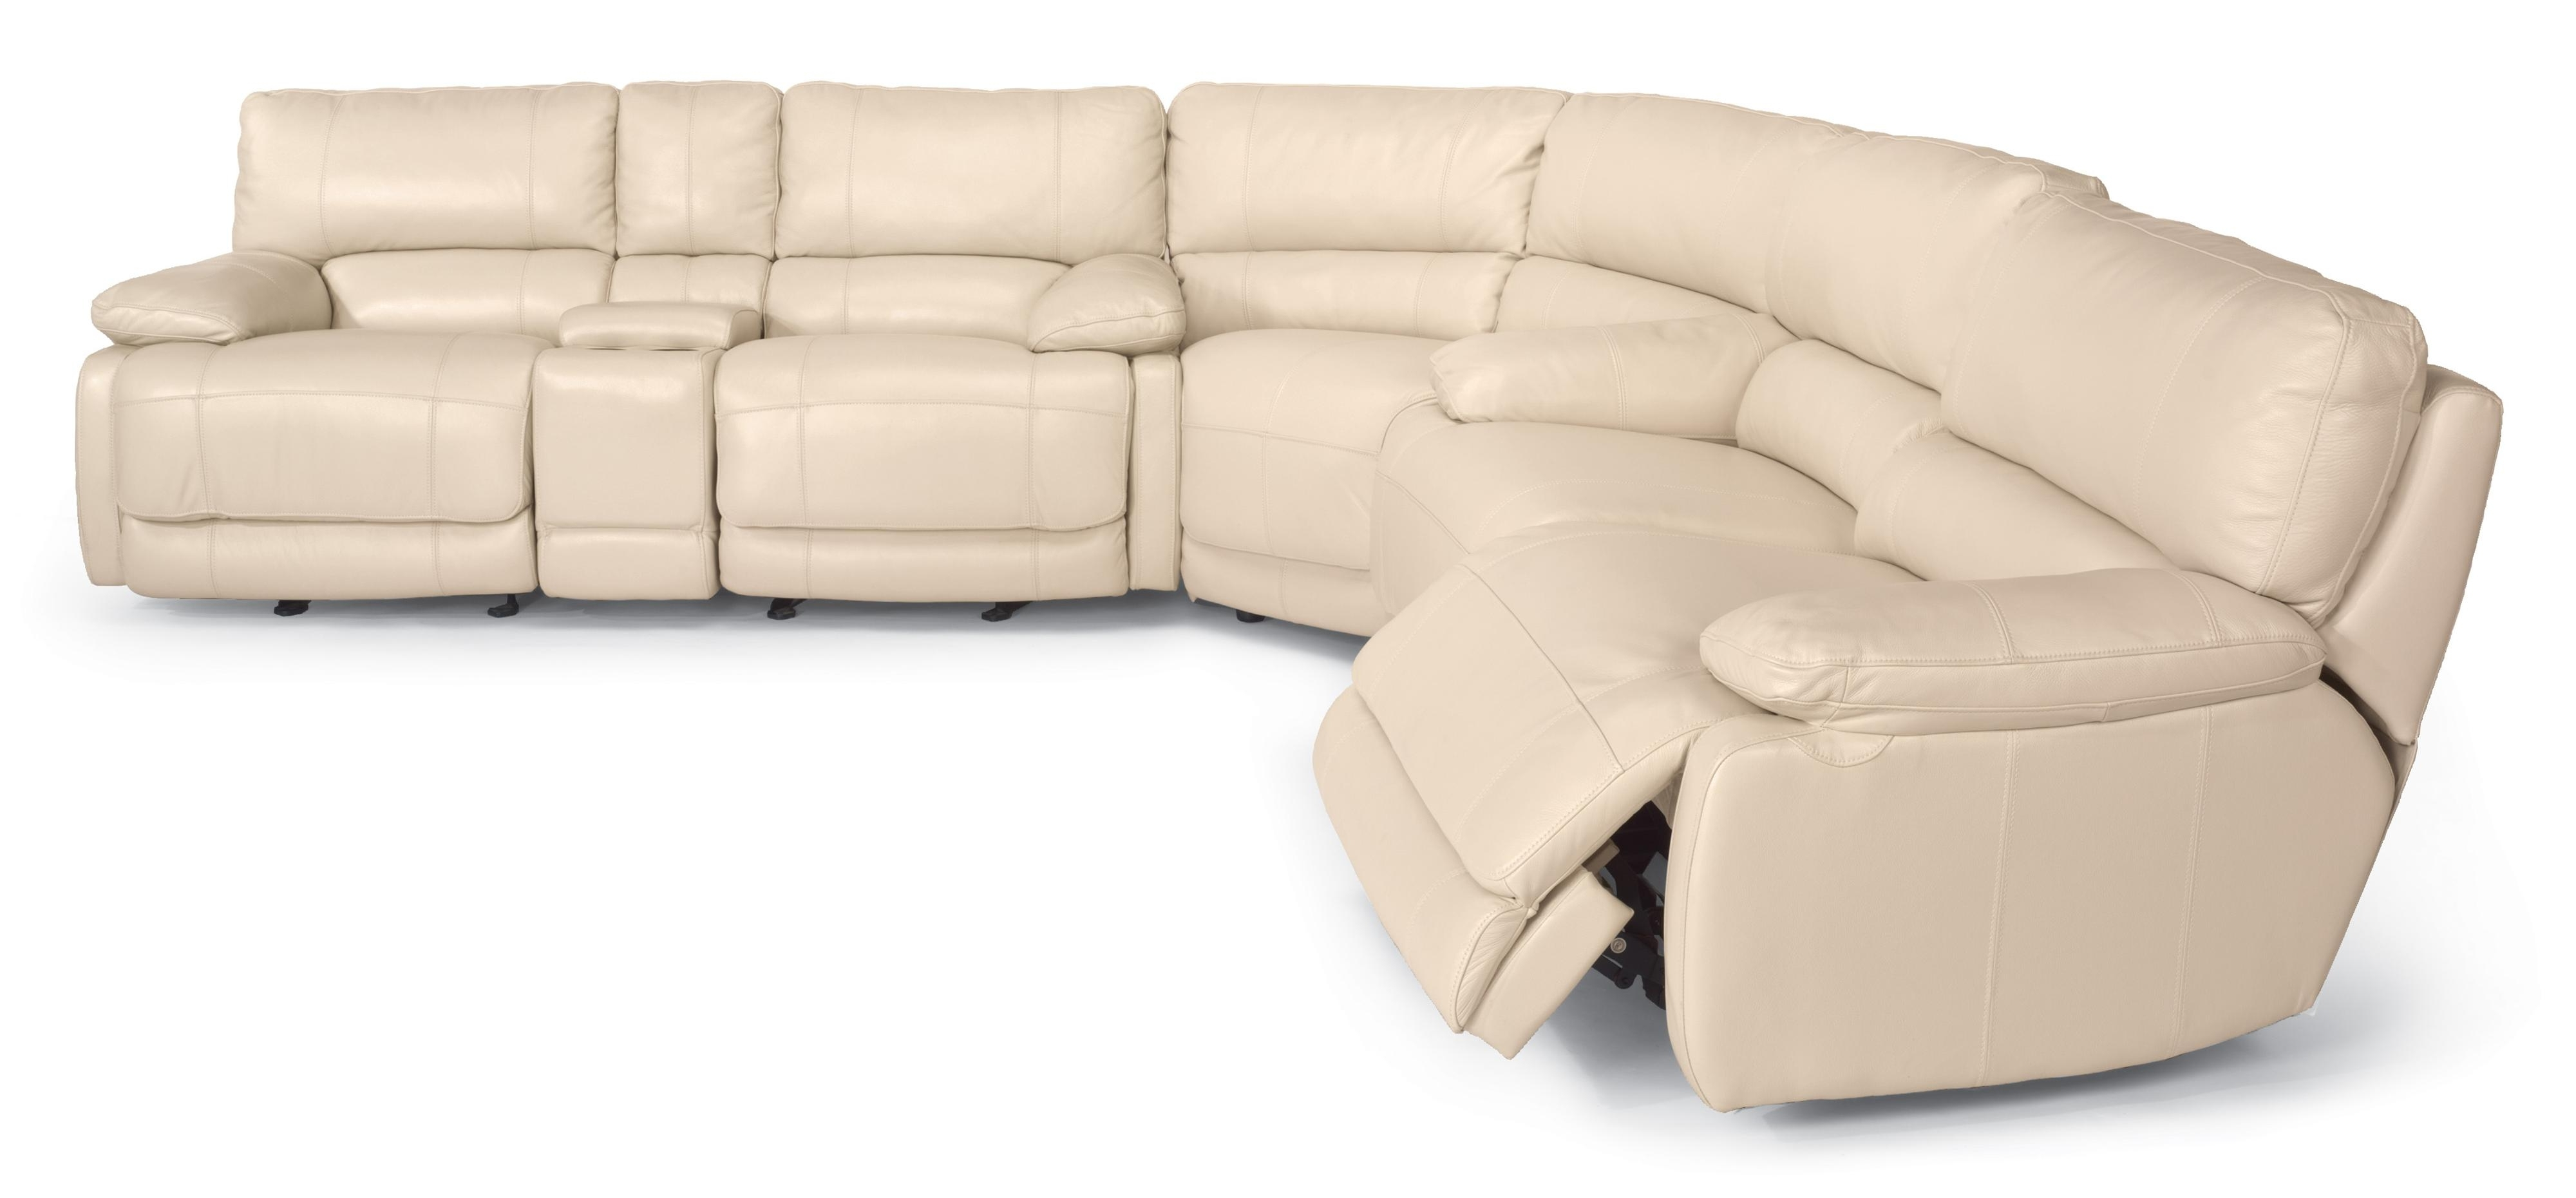 Current Kansas City Sectional Sofas With Flexsteel Latitudes – Hermosa Reclining Sectional Sofa – Ahfa (View 3 of 20)